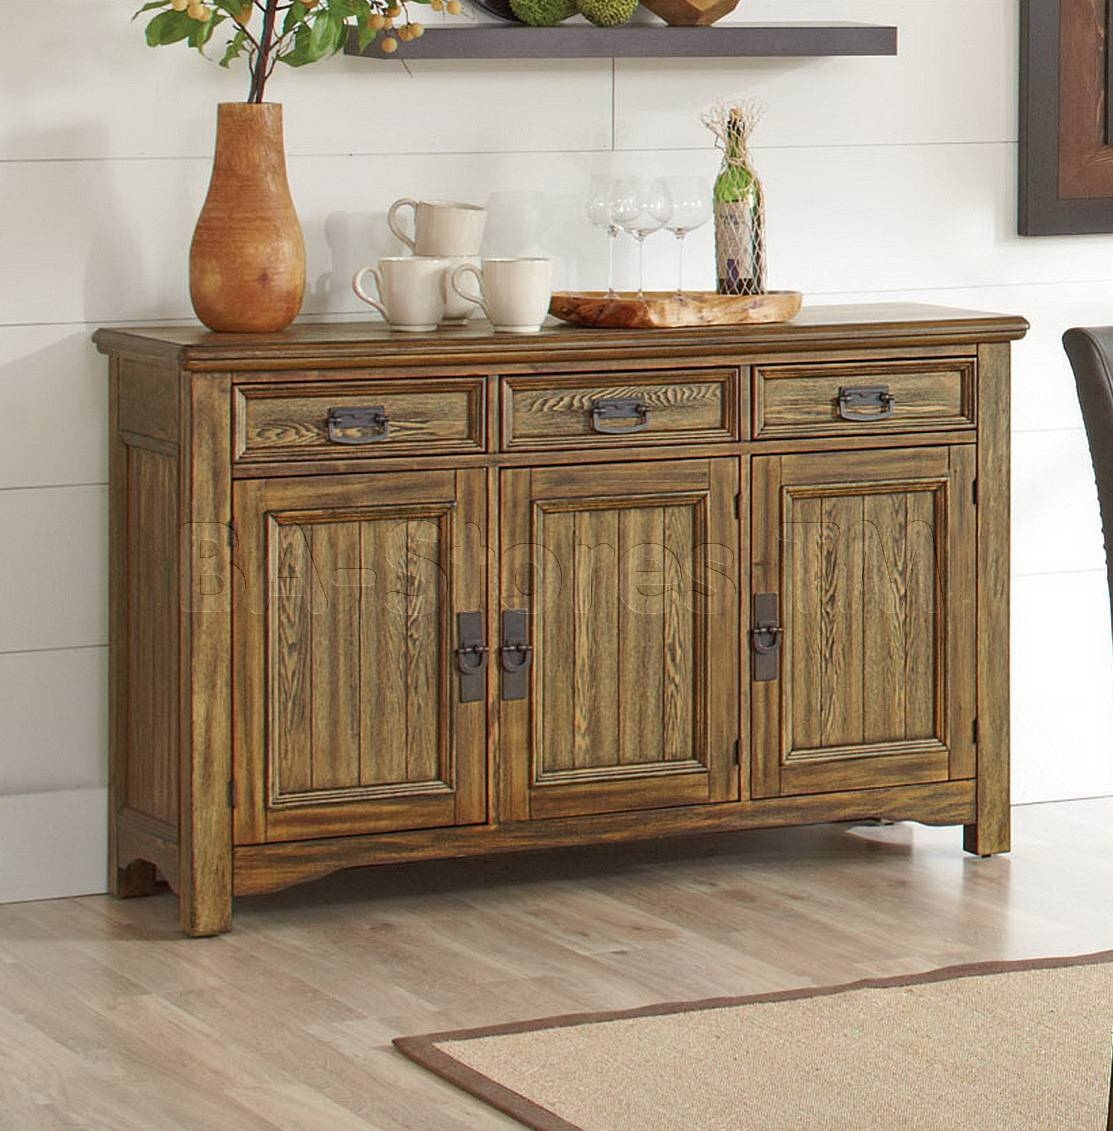 Kitchen Cabinet : Narrow Buffet Table 42 Inch Sideboard Modern Regarding 42 Inch Sideboards (Photo 7 of 15)